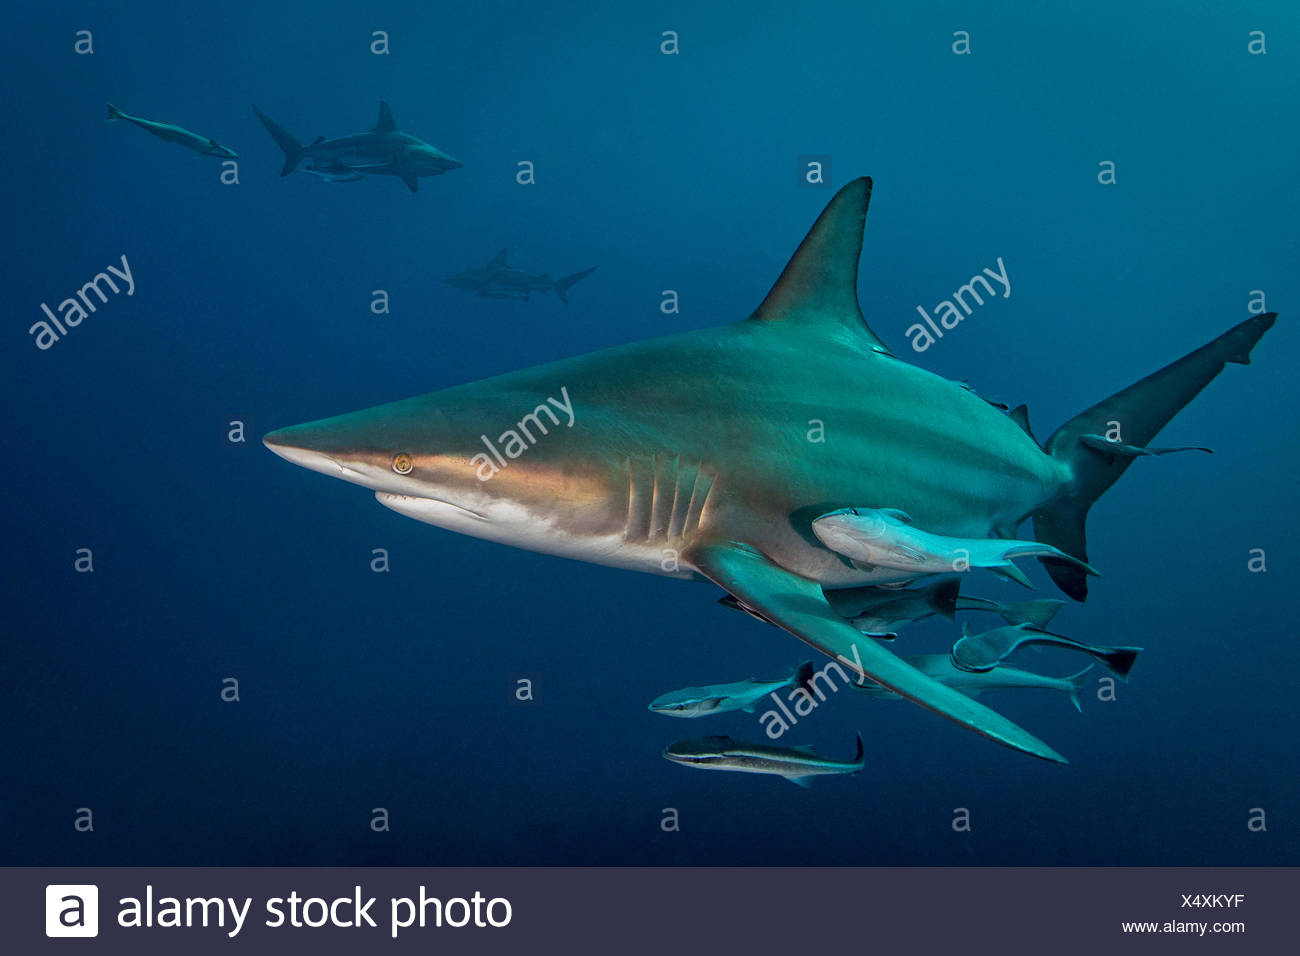 Oceanic Blacktip Shark (Carcharhinus Limbatus) circling prey, Aliwal Shoal, South Africa Stock Photo